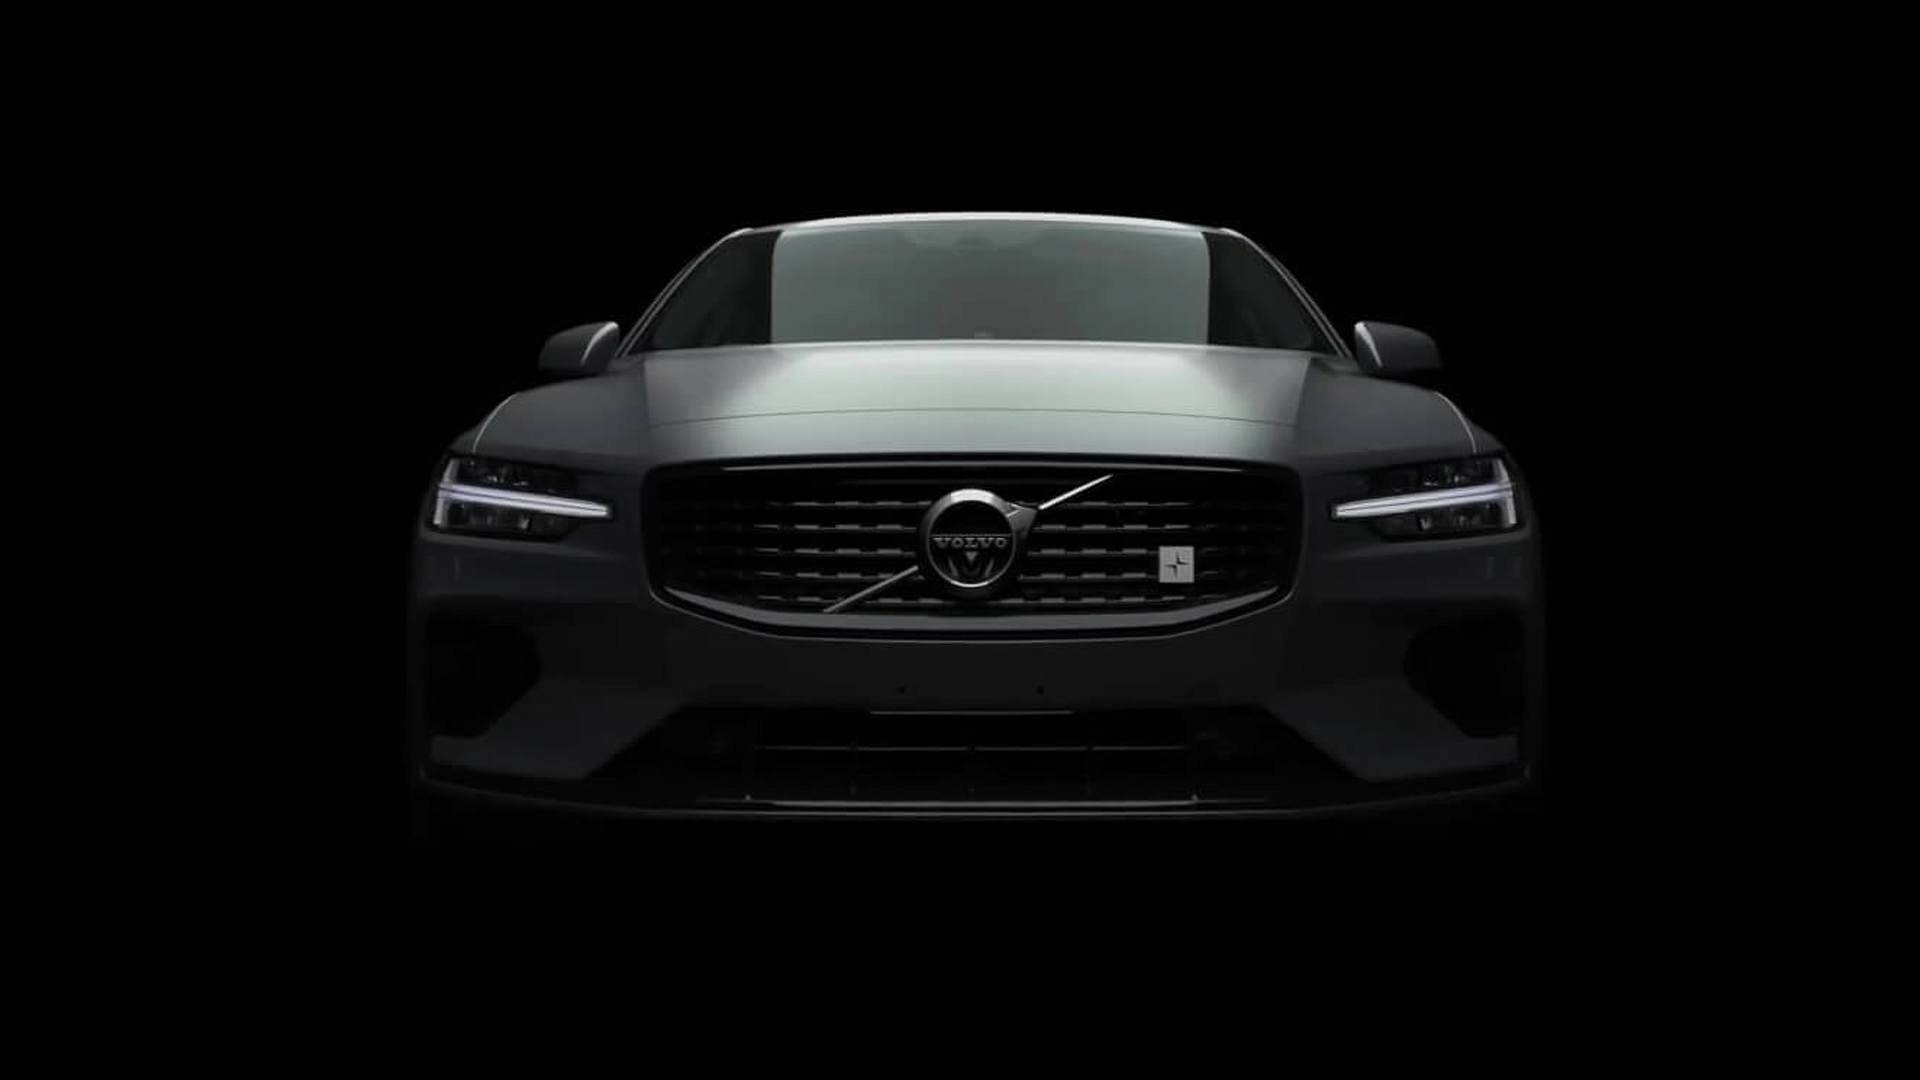 2019 Volvo S60 Teased Ahead Of June 20th Debut With Polestar Engineered Upgrades - autoevolution